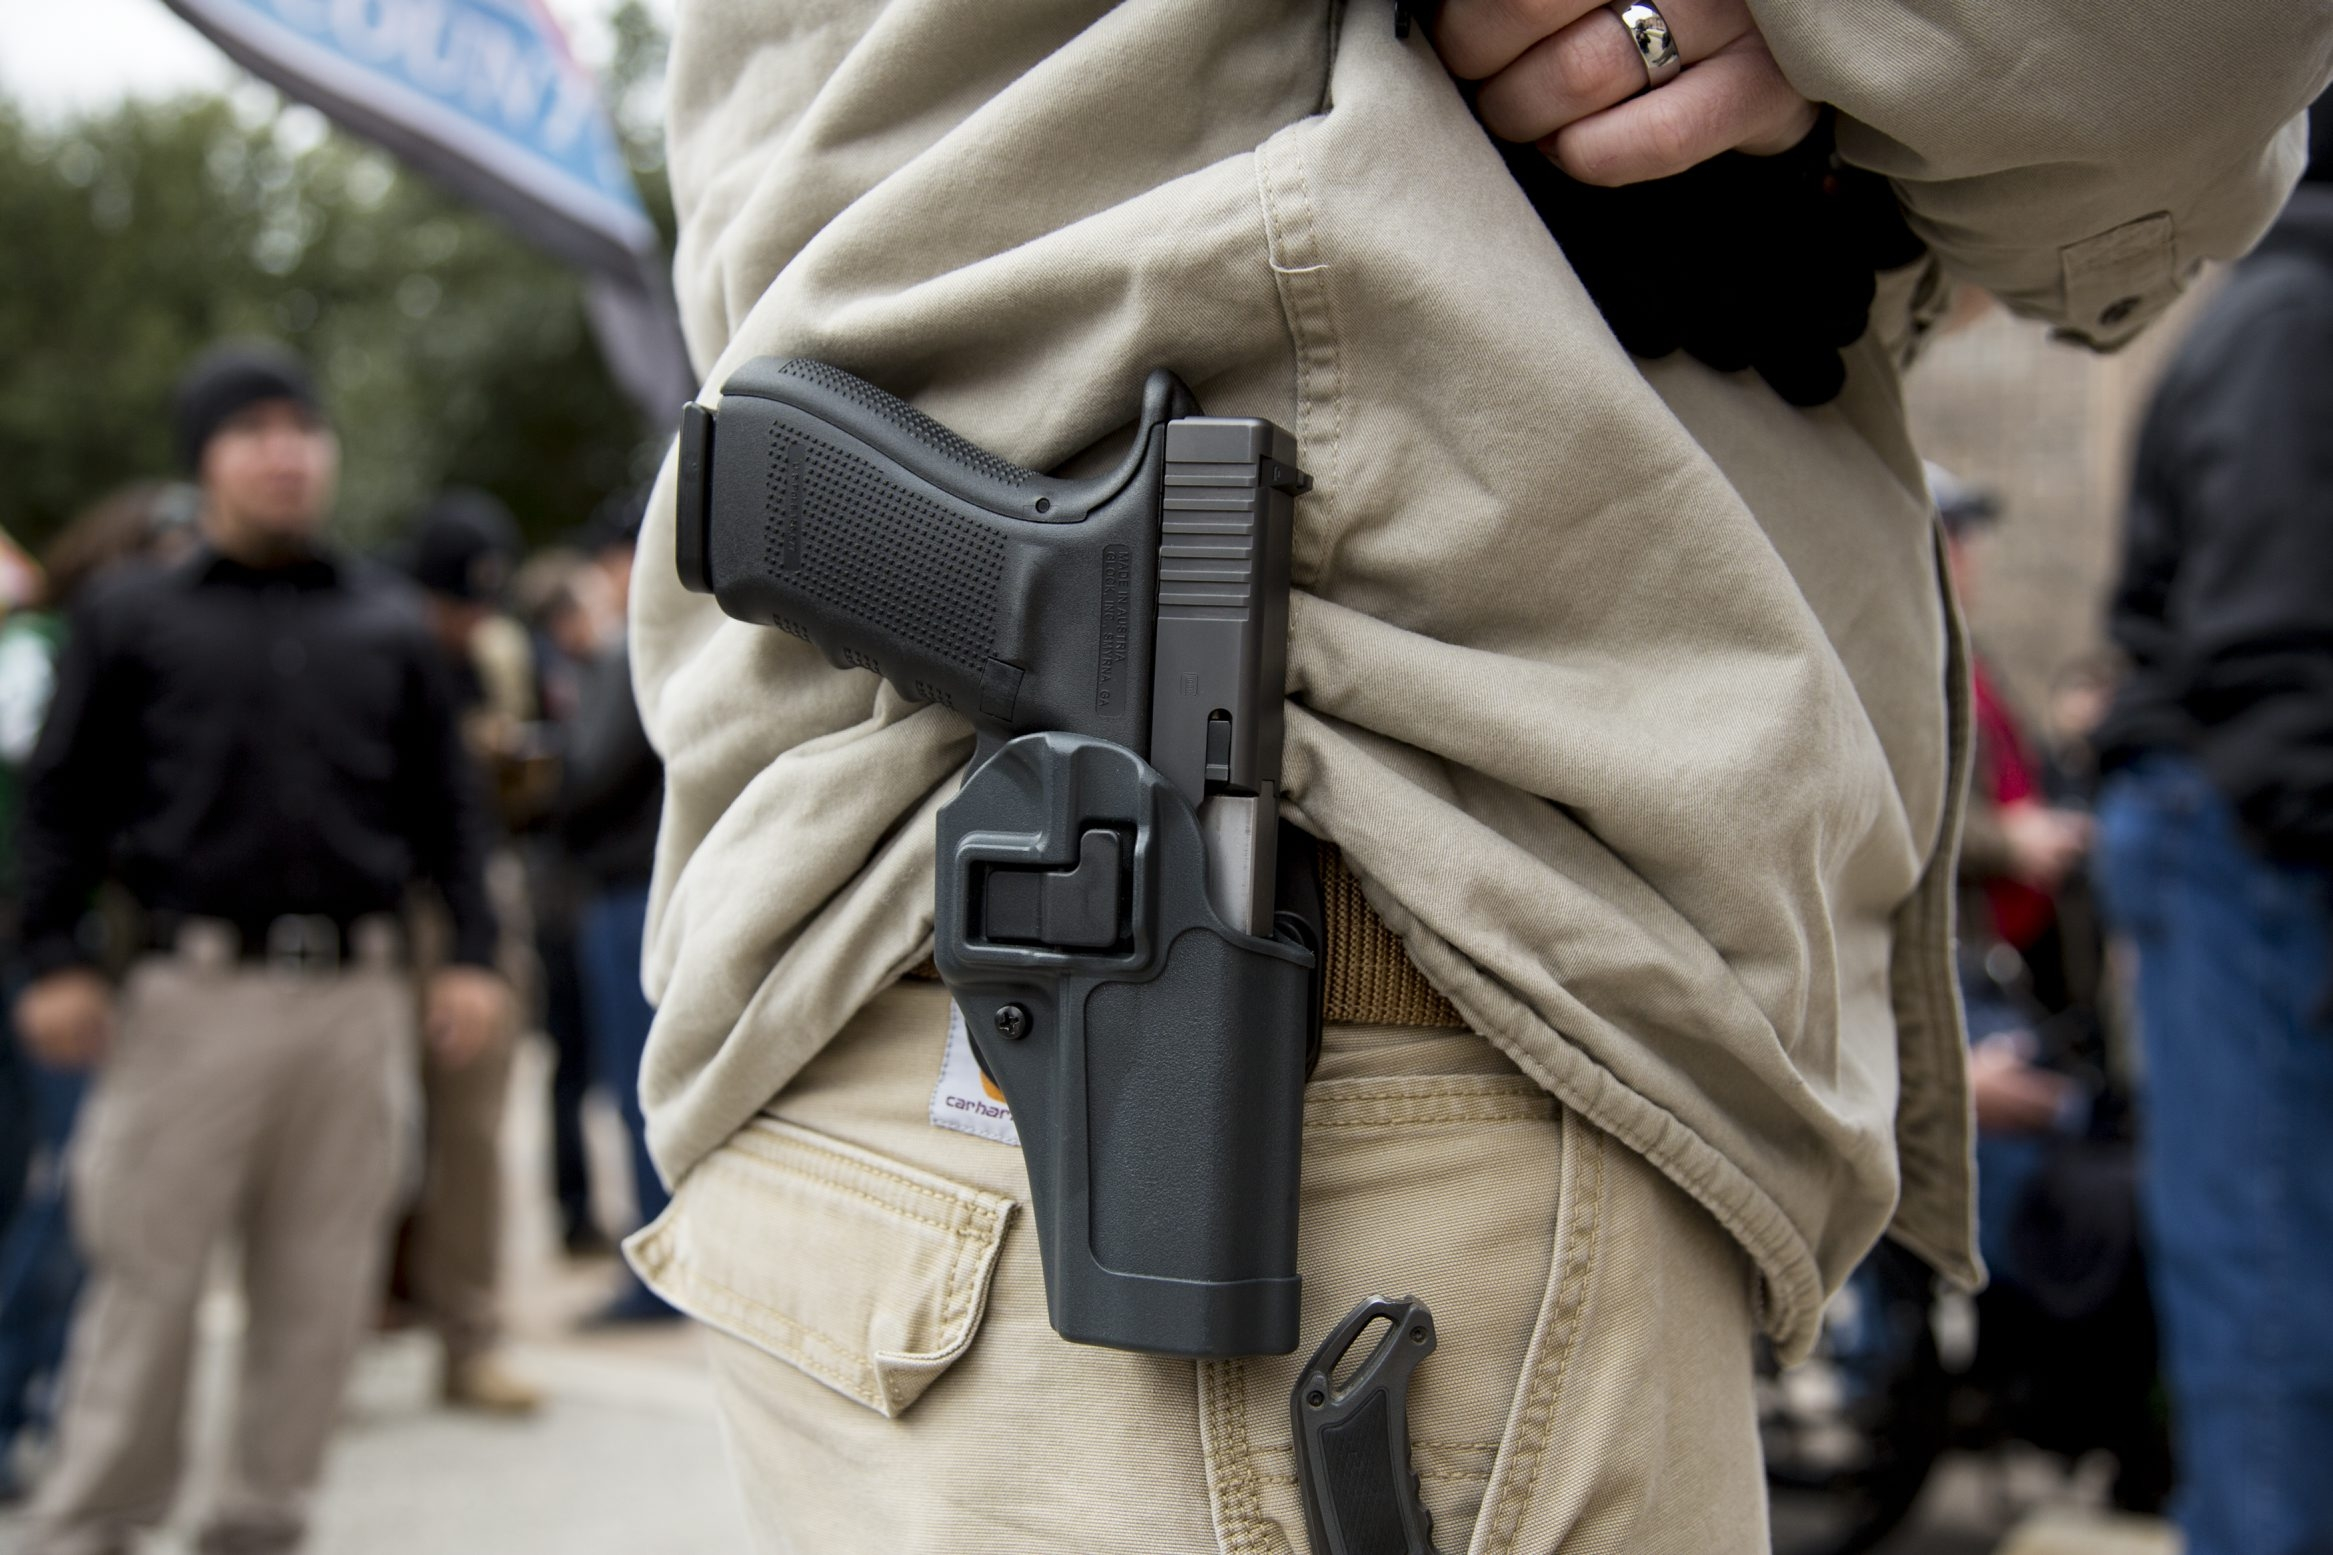 Thanks to Ohio's open-carry laws, you'll be able to go to the Republican National Convention armed. (Ilana Panich-Linsman/The New York Times)